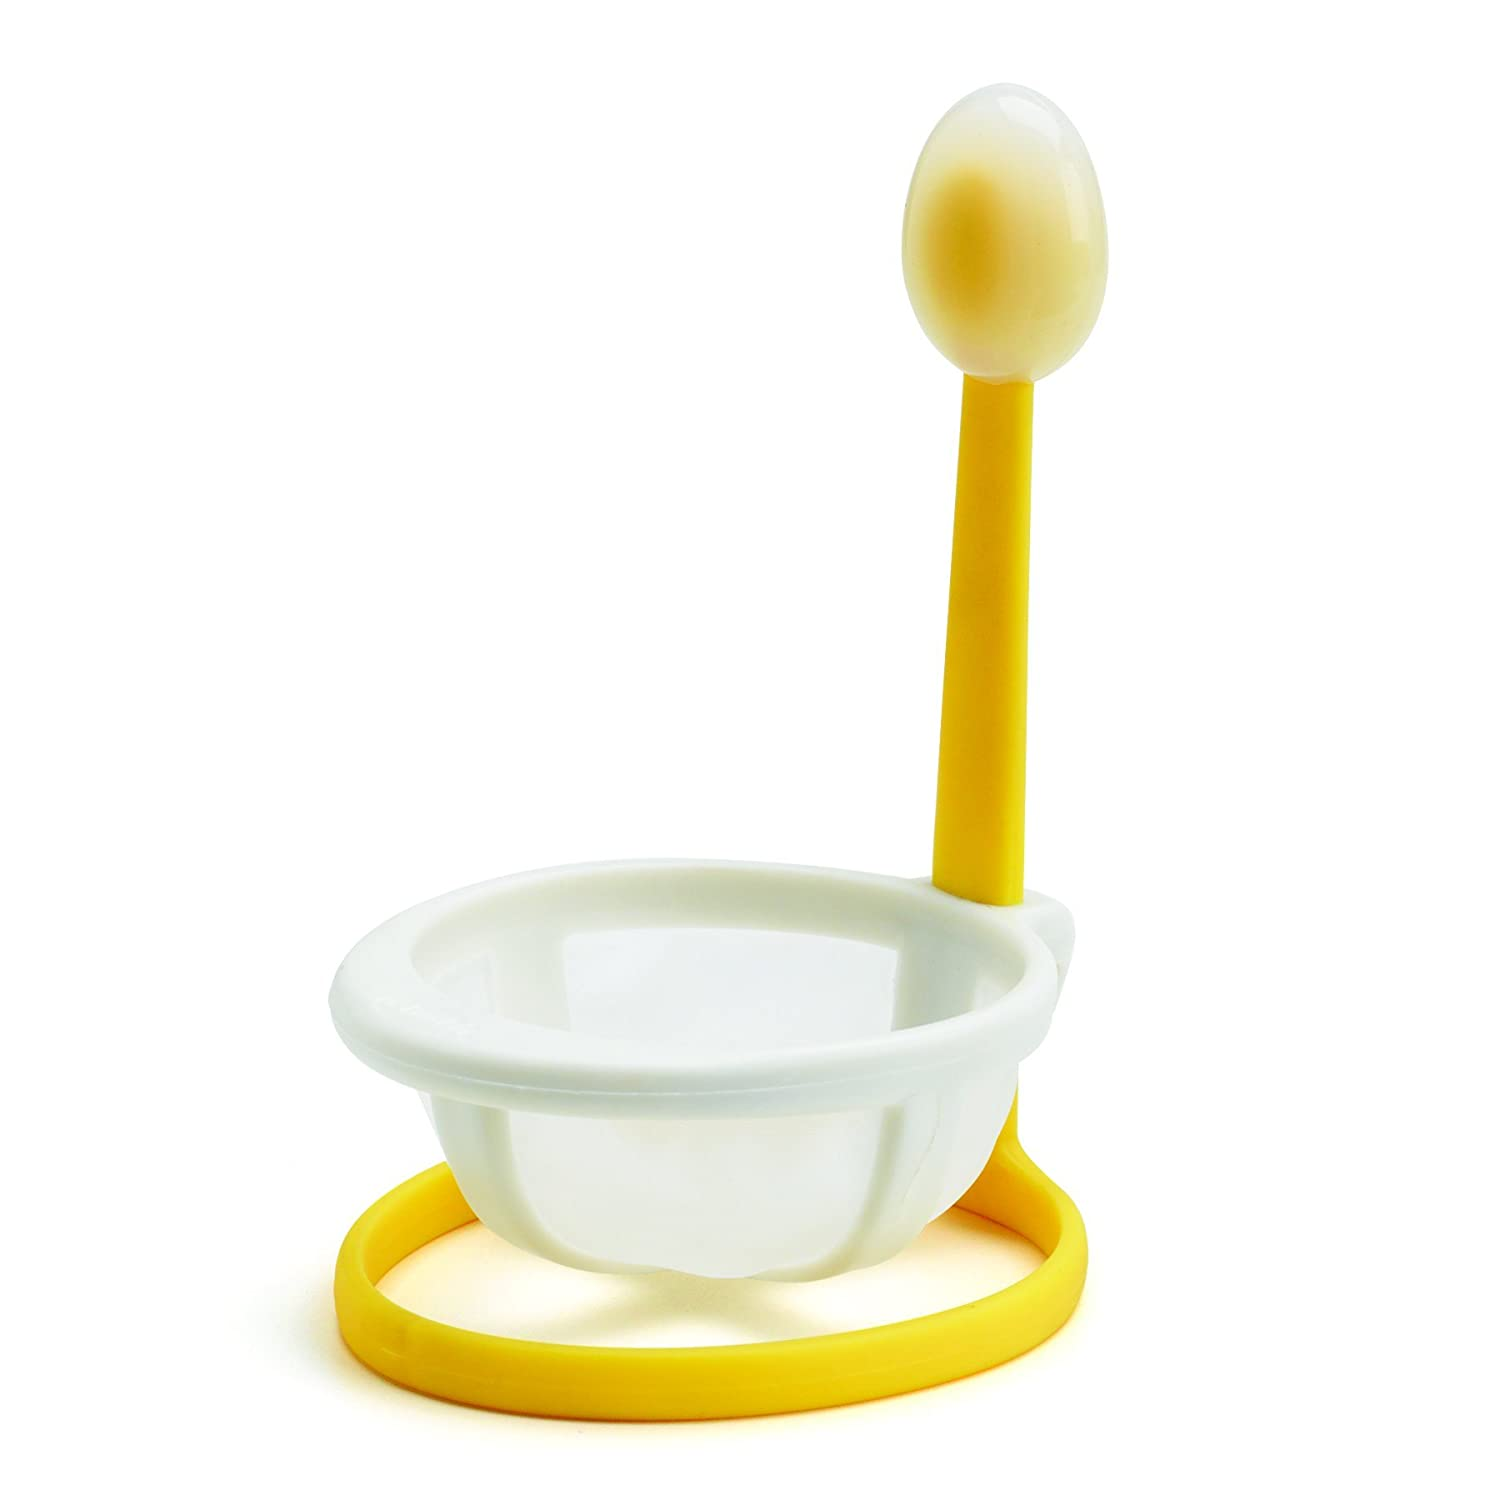 Chef'n 9.5 x 8.0 x 15.0 cm Yolkster Egg Poacher, Yellow/White Chef'n 102-517-174